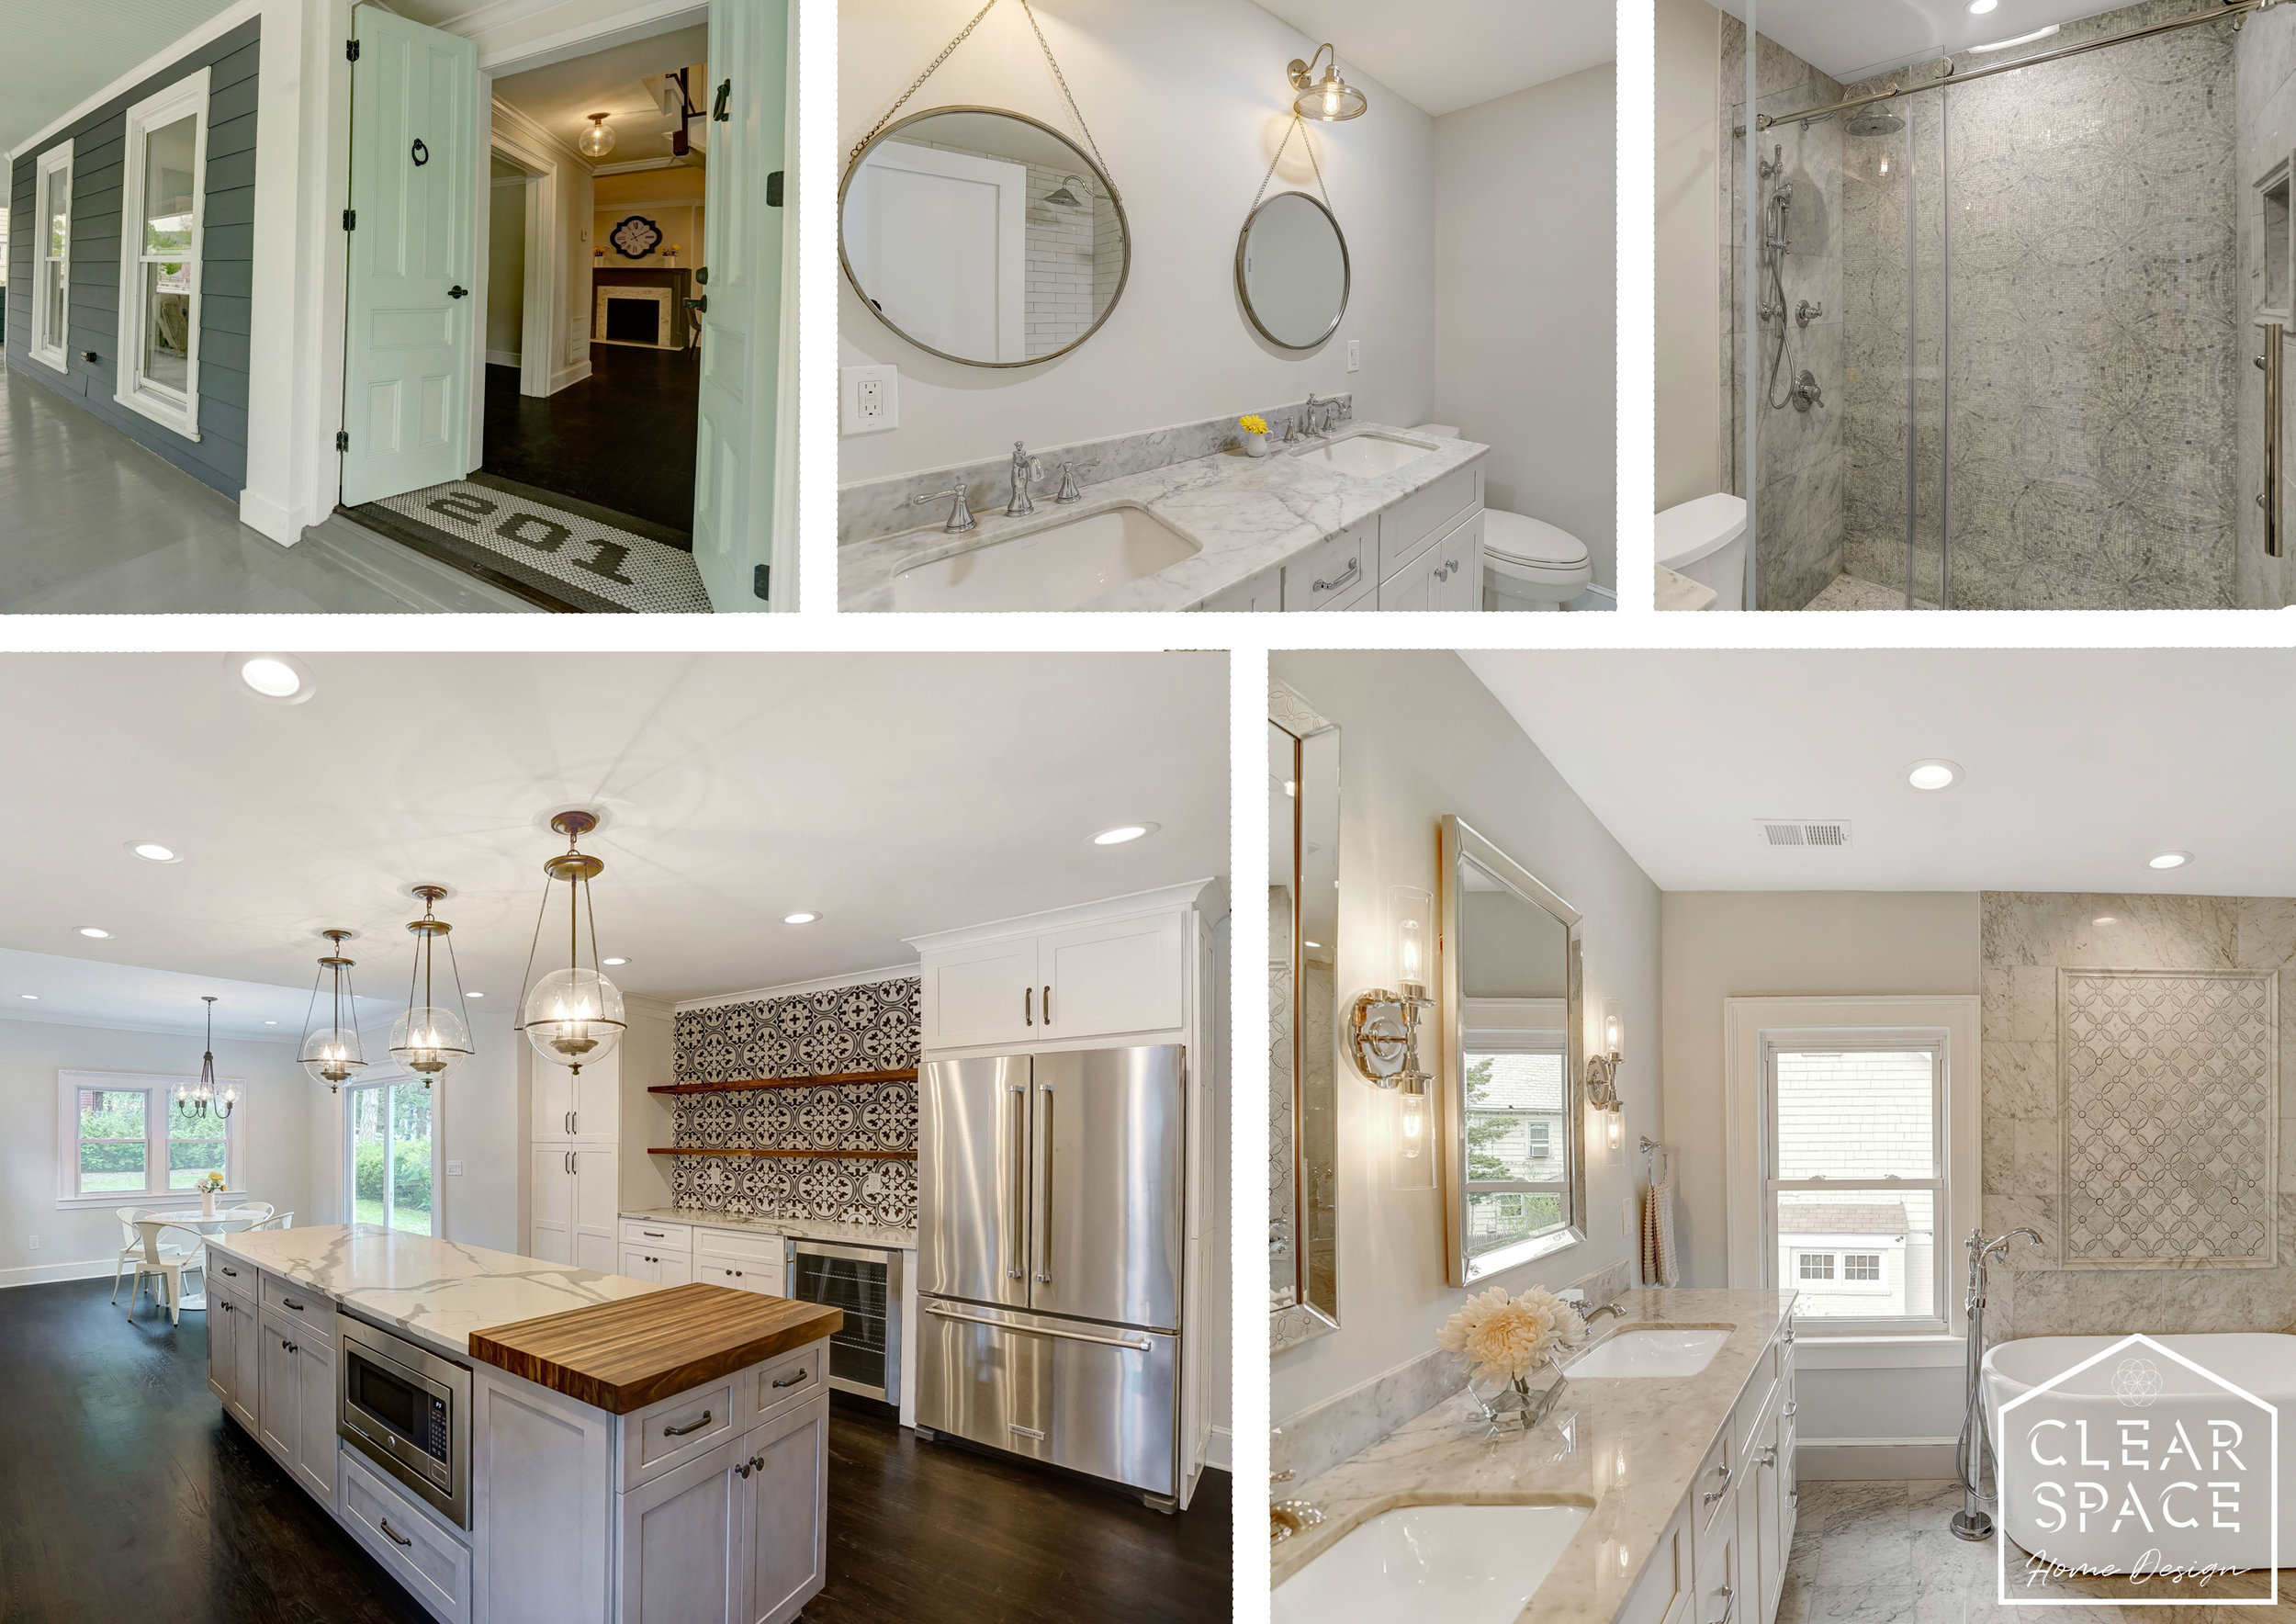 Here's a little overview of some the WOW factors... entry doors and tile, Carrara marble baths, tile feature walls and an expansive kitchen with custom walnut chopping block, floating shelves and Moroccan feature tile.